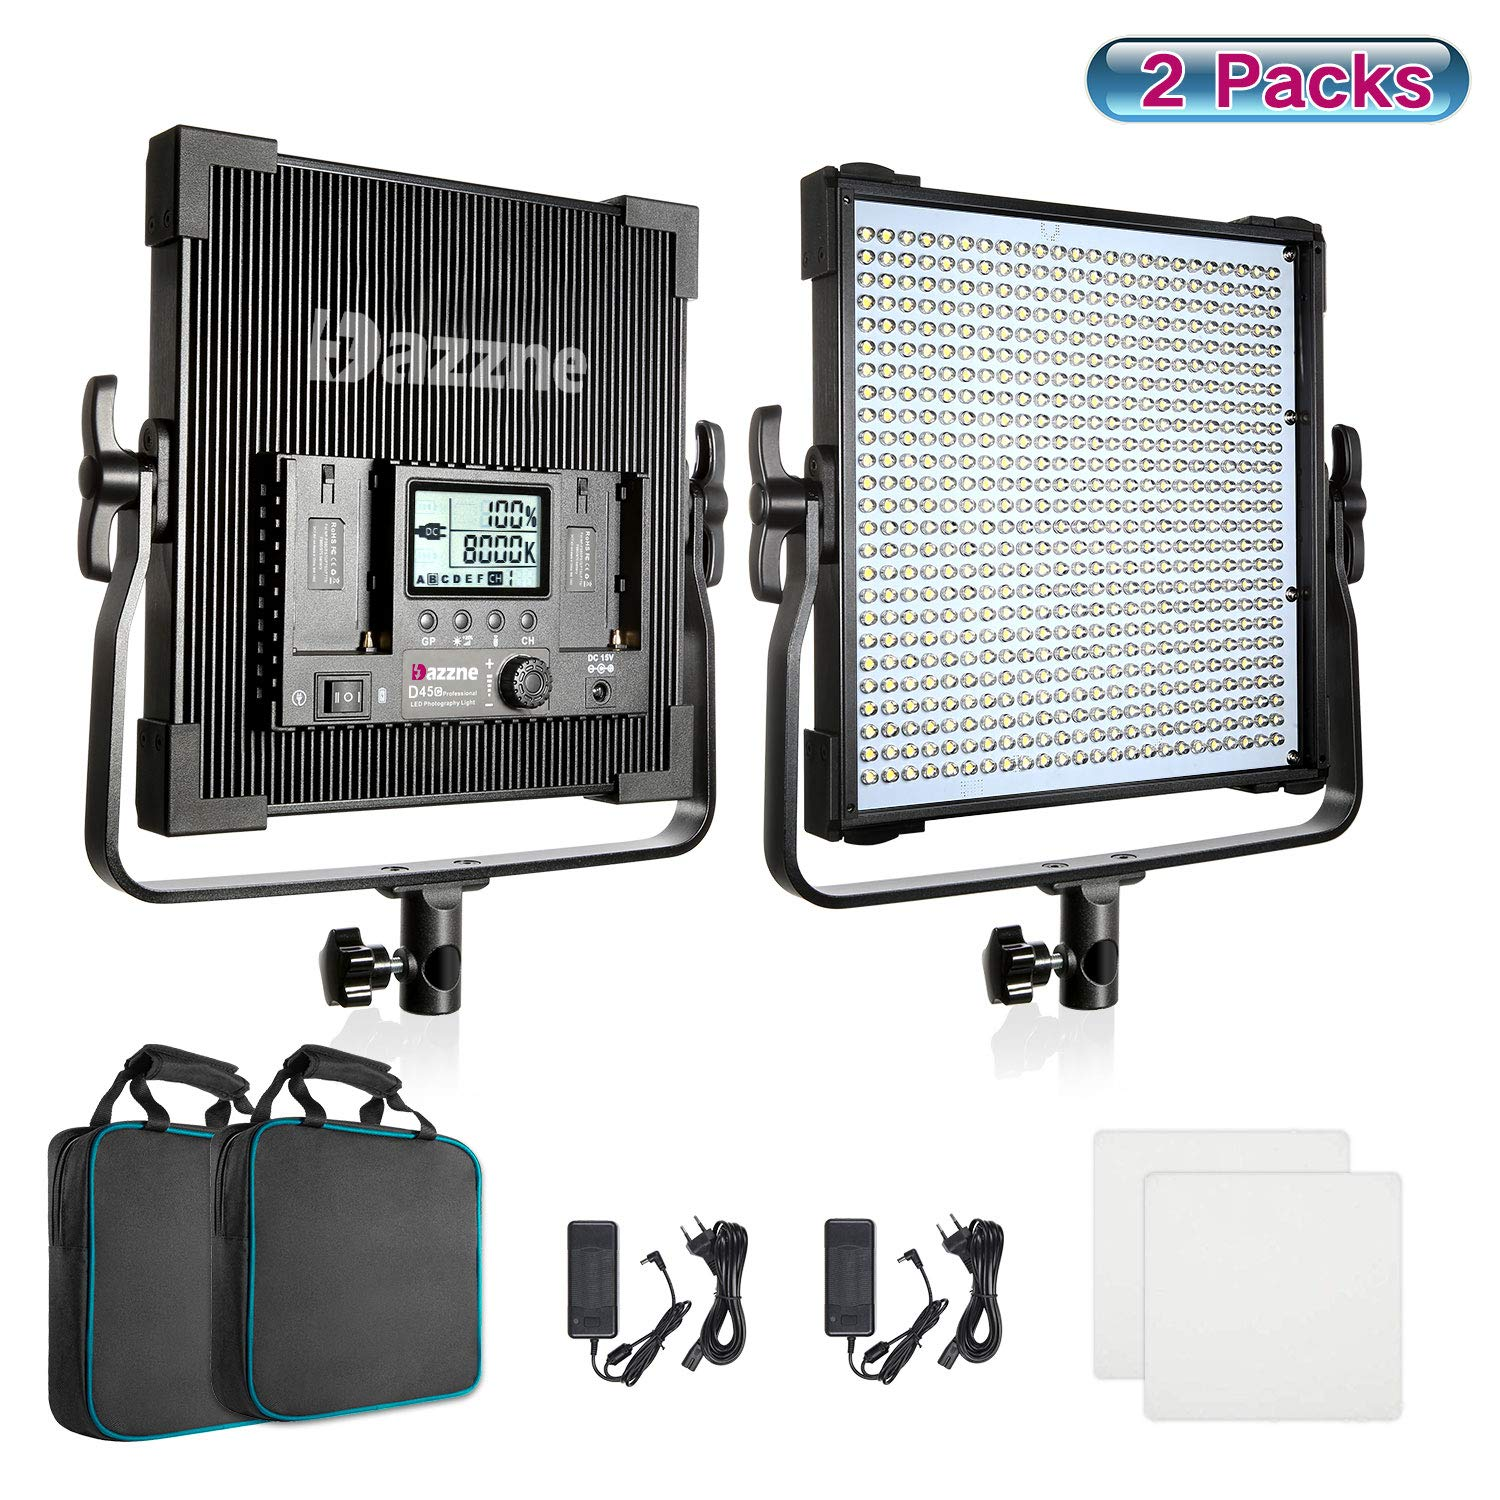 Bi-Color LED Video Lighting Kit Photography Panel 3000K-8000K 45W 19000 Lux TLCI 96 Dimmable for Studio YouTube Video Shooting Film Photo Twitch Live Stream Vlog Green Screen Lighting High Brightness